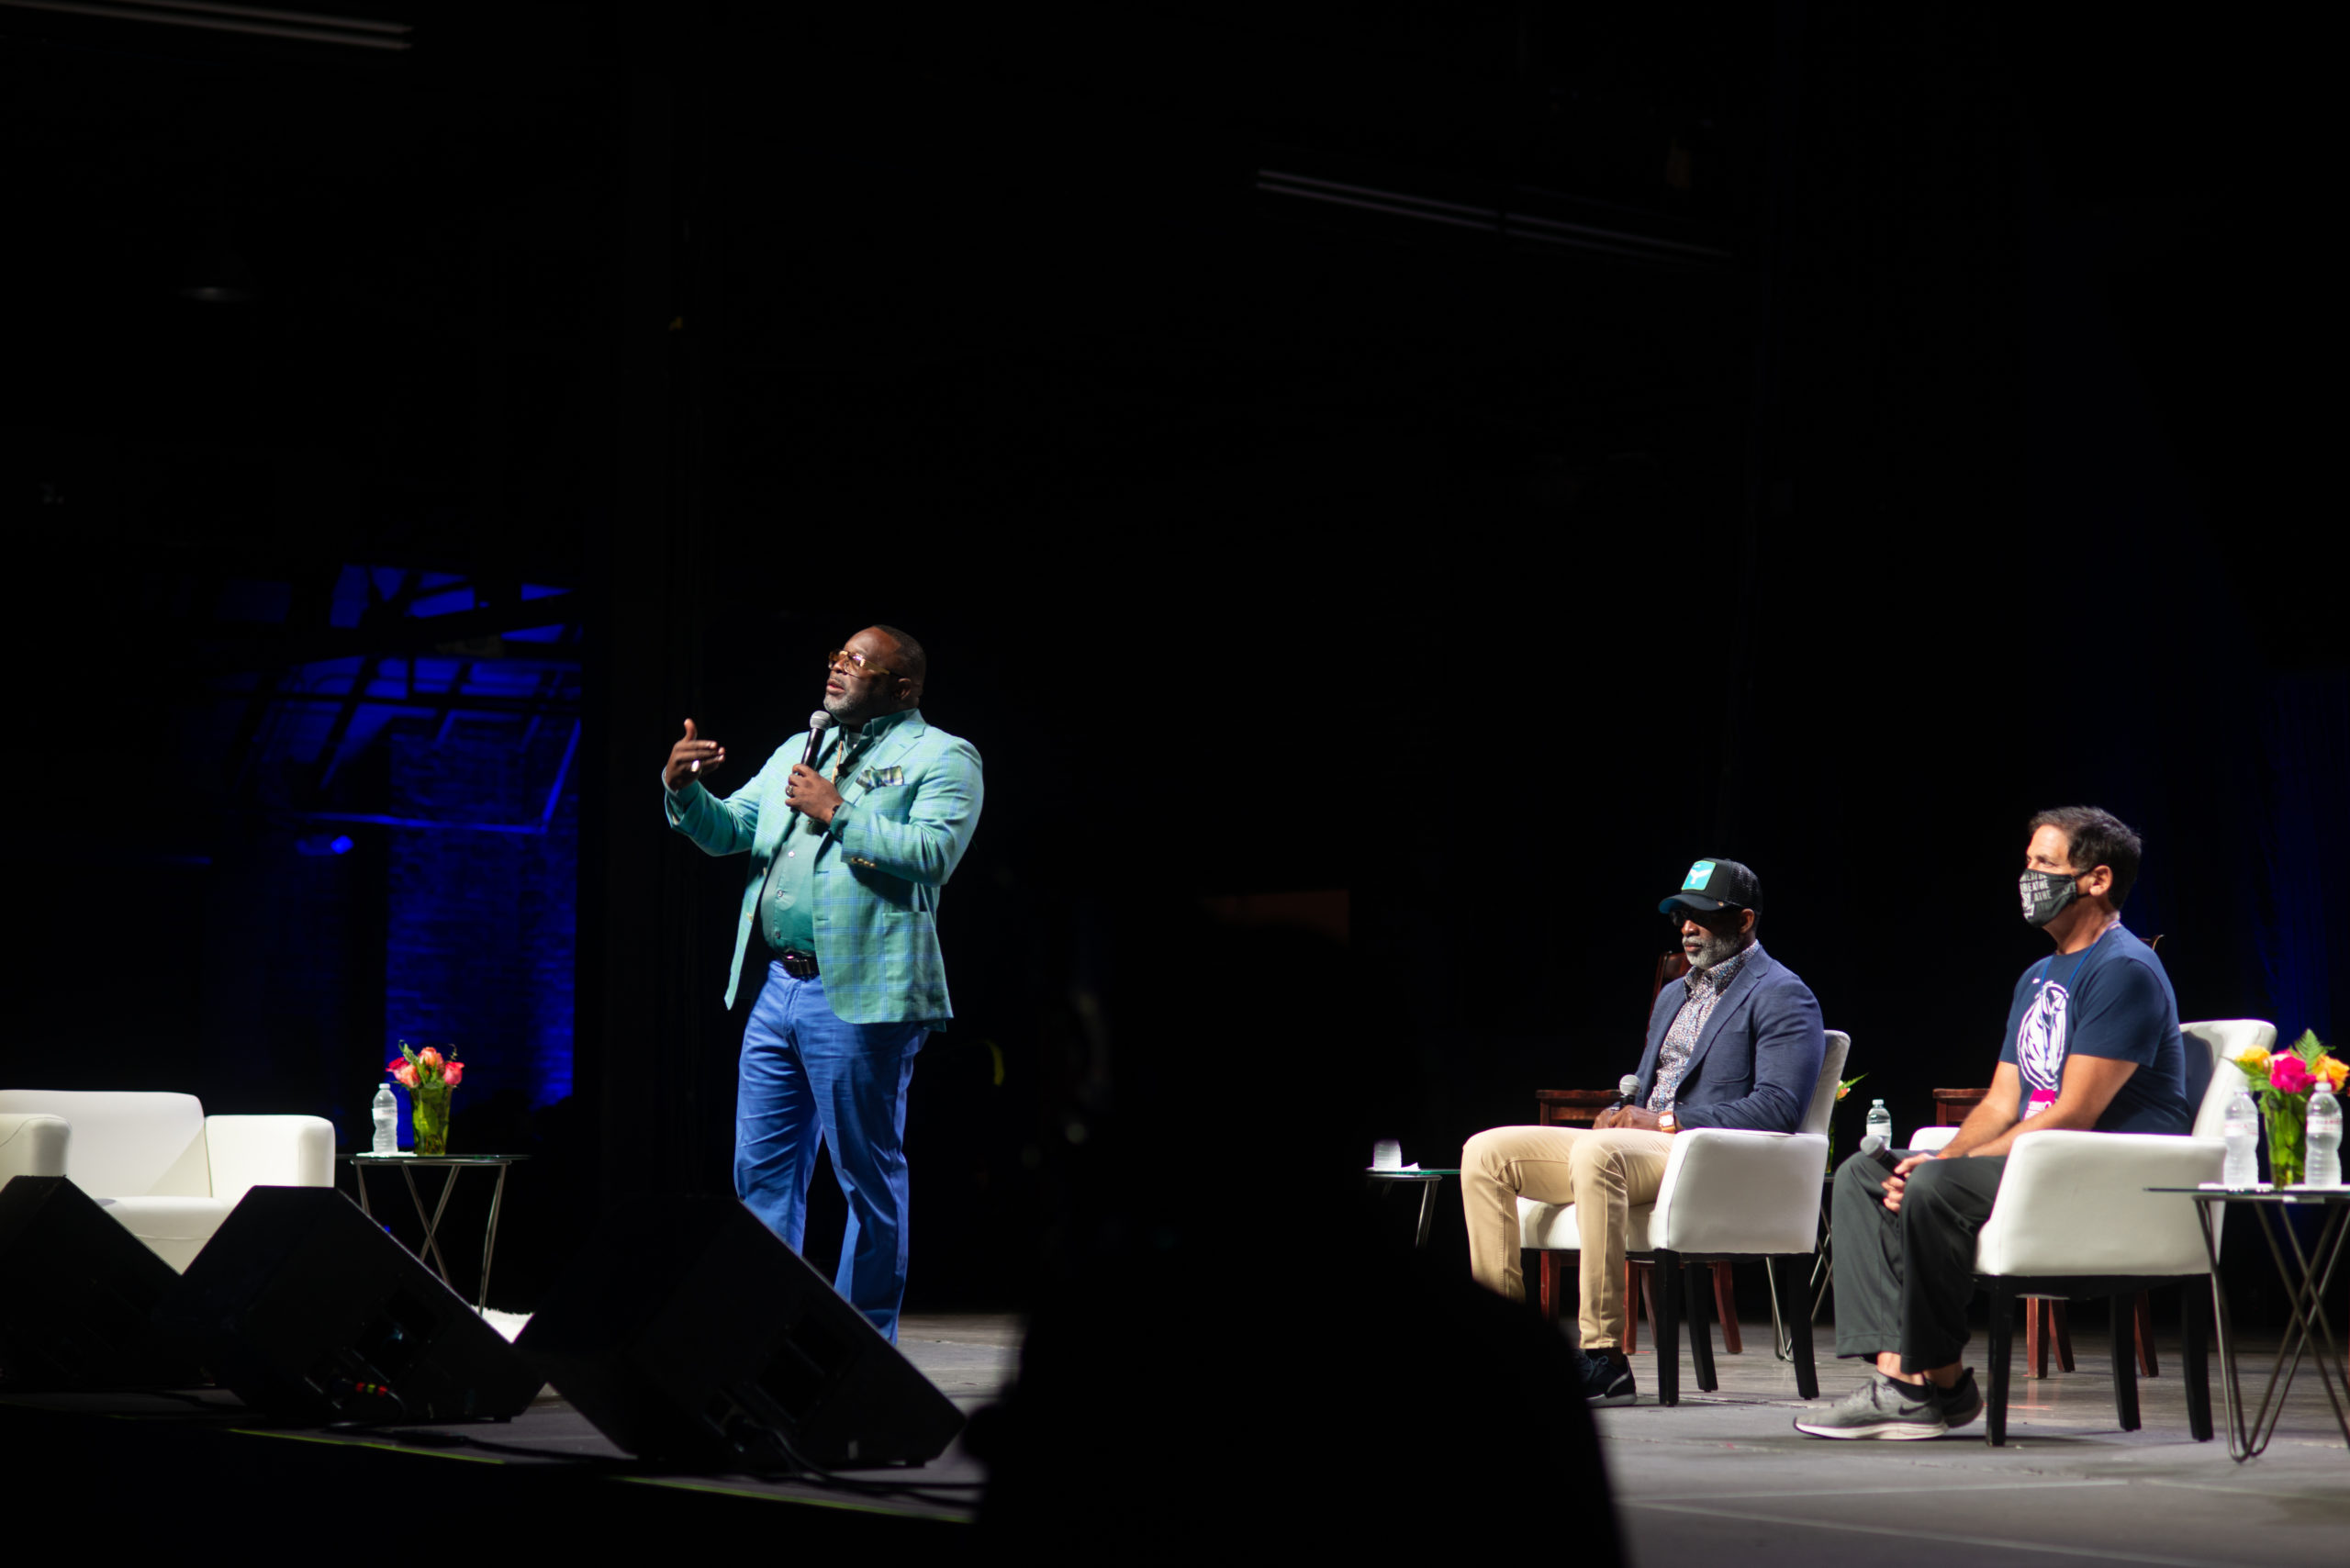 You are currently viewing Fox 4 Dallas – Mark Cuban, Deion Sanders discuss race relations during Dallas Heal America Tour